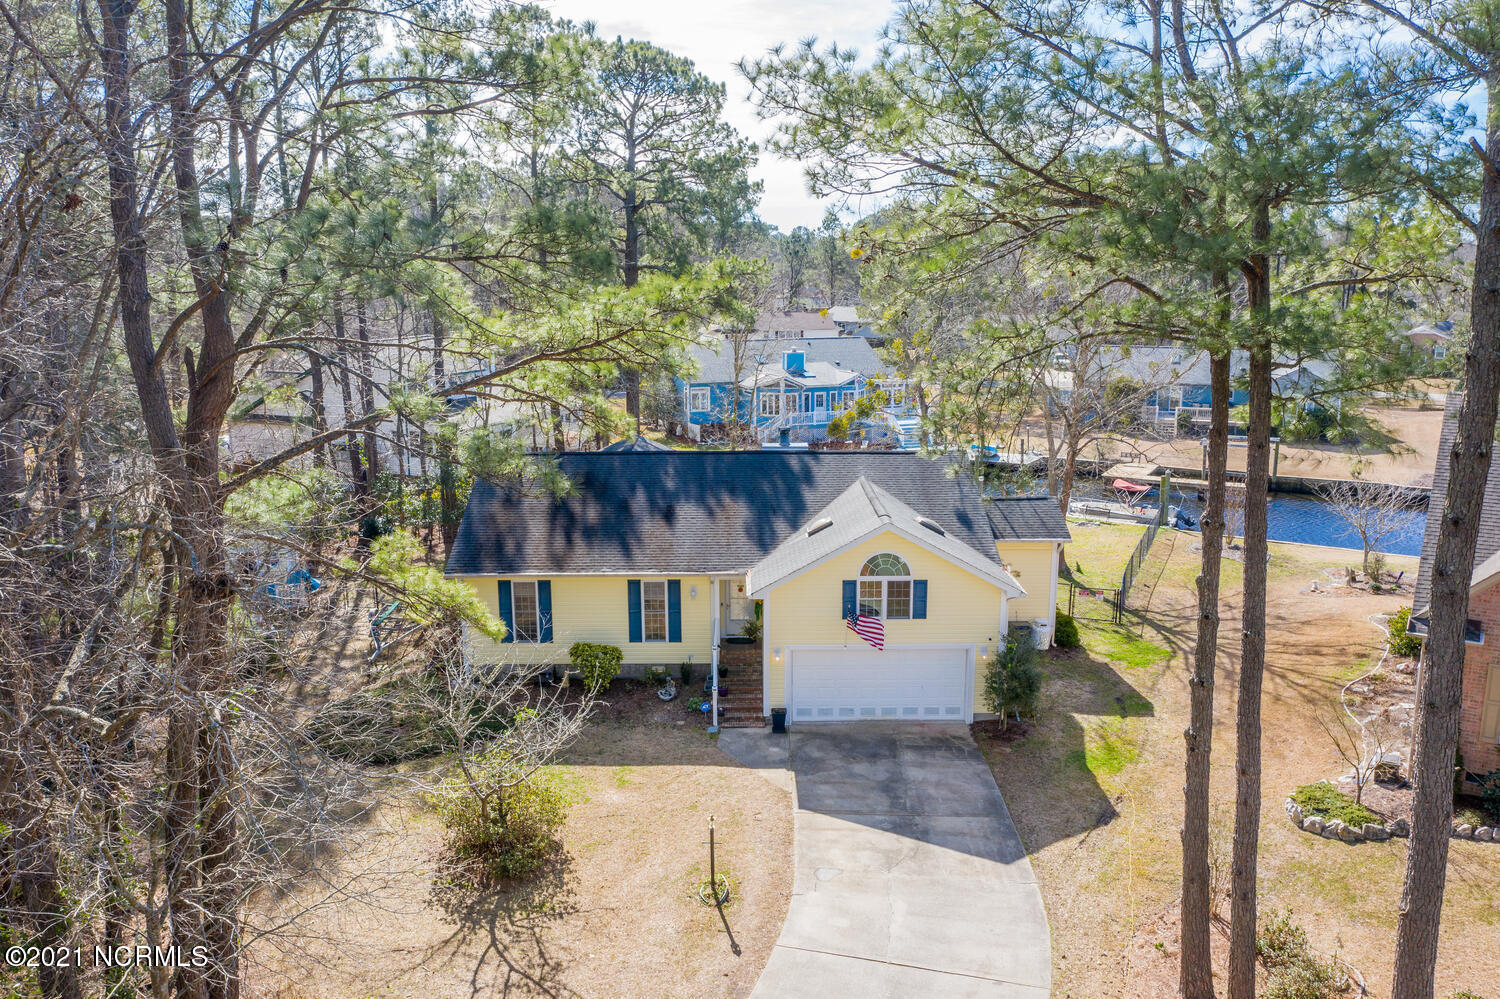 109 Commander Circle, New Bern, North Carolina 28562, 3 Bedrooms Bedrooms, 7 Rooms Rooms,2 BathroomsBathrooms,Single family residence,For sale,Commander,100251675